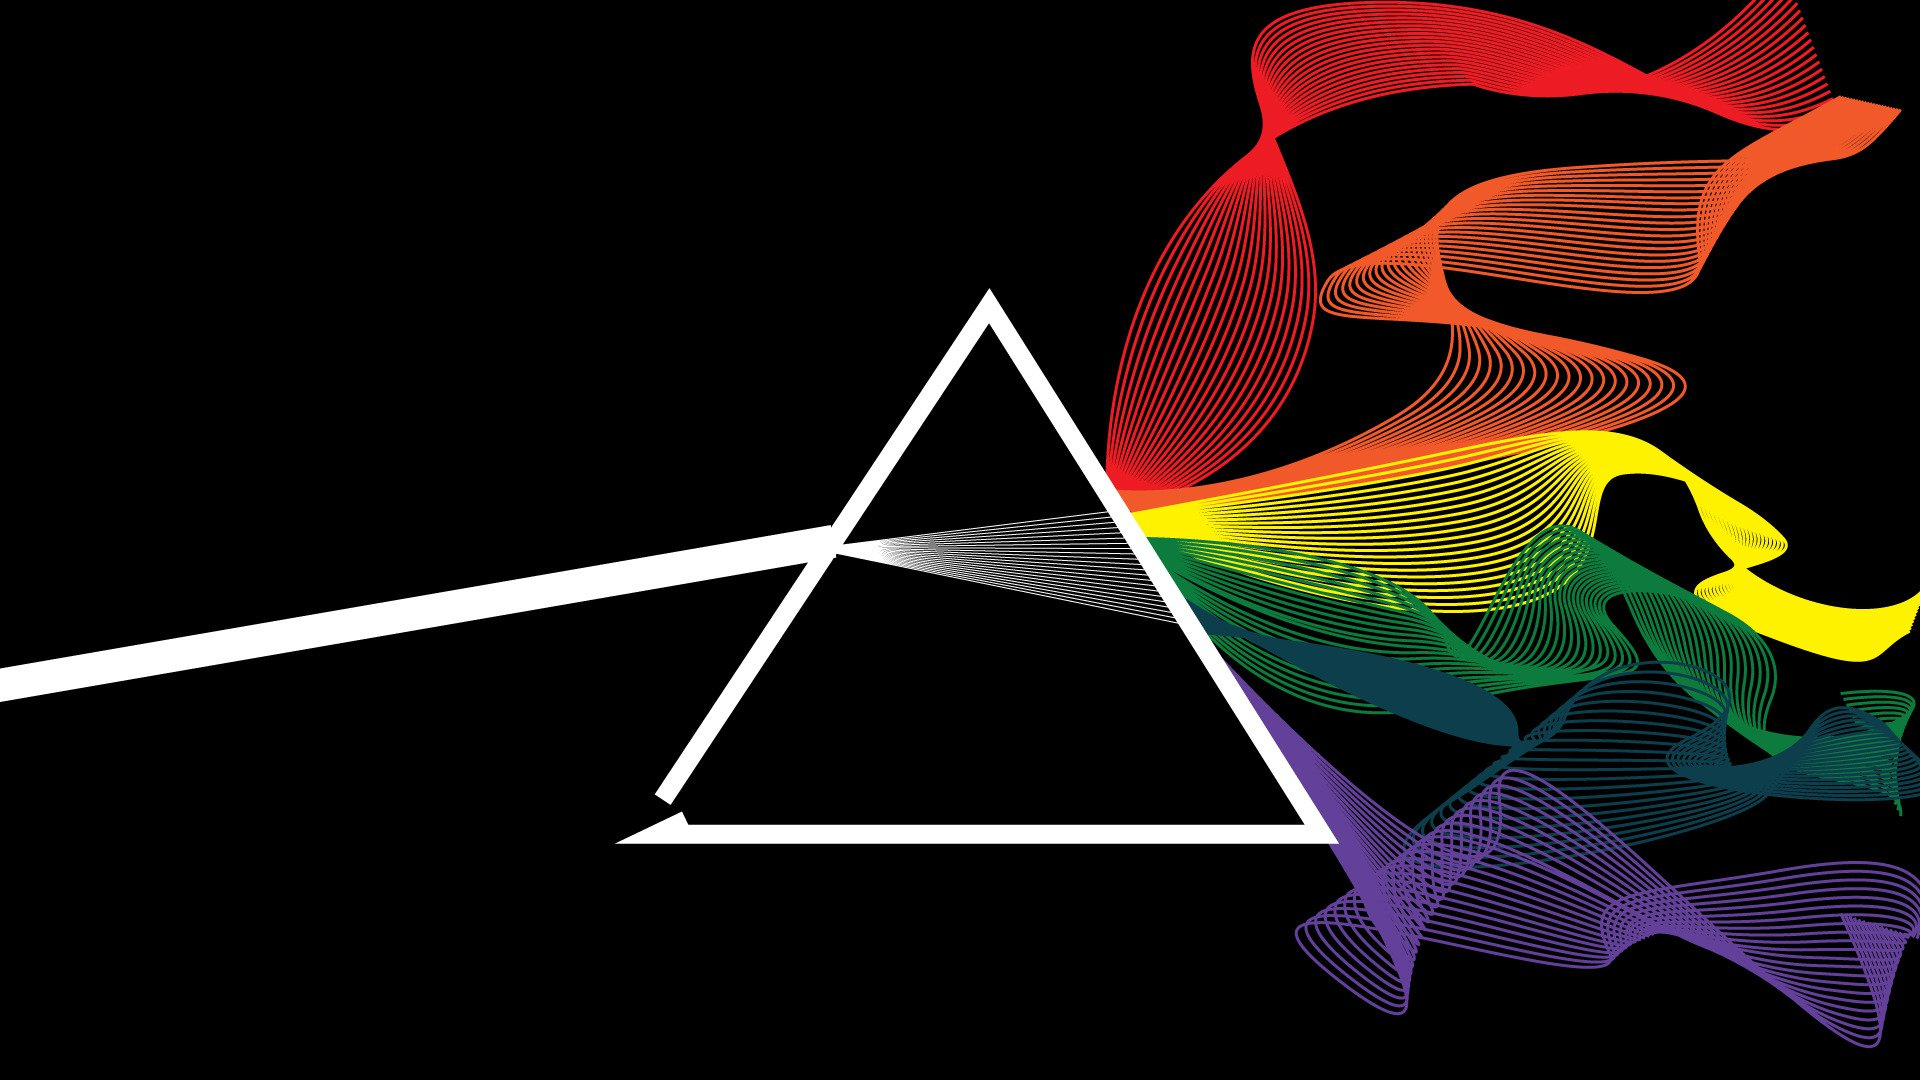 Pink Floyd The Dark Side Of The Moon Wallpapers HD   Taringa 1920x1080